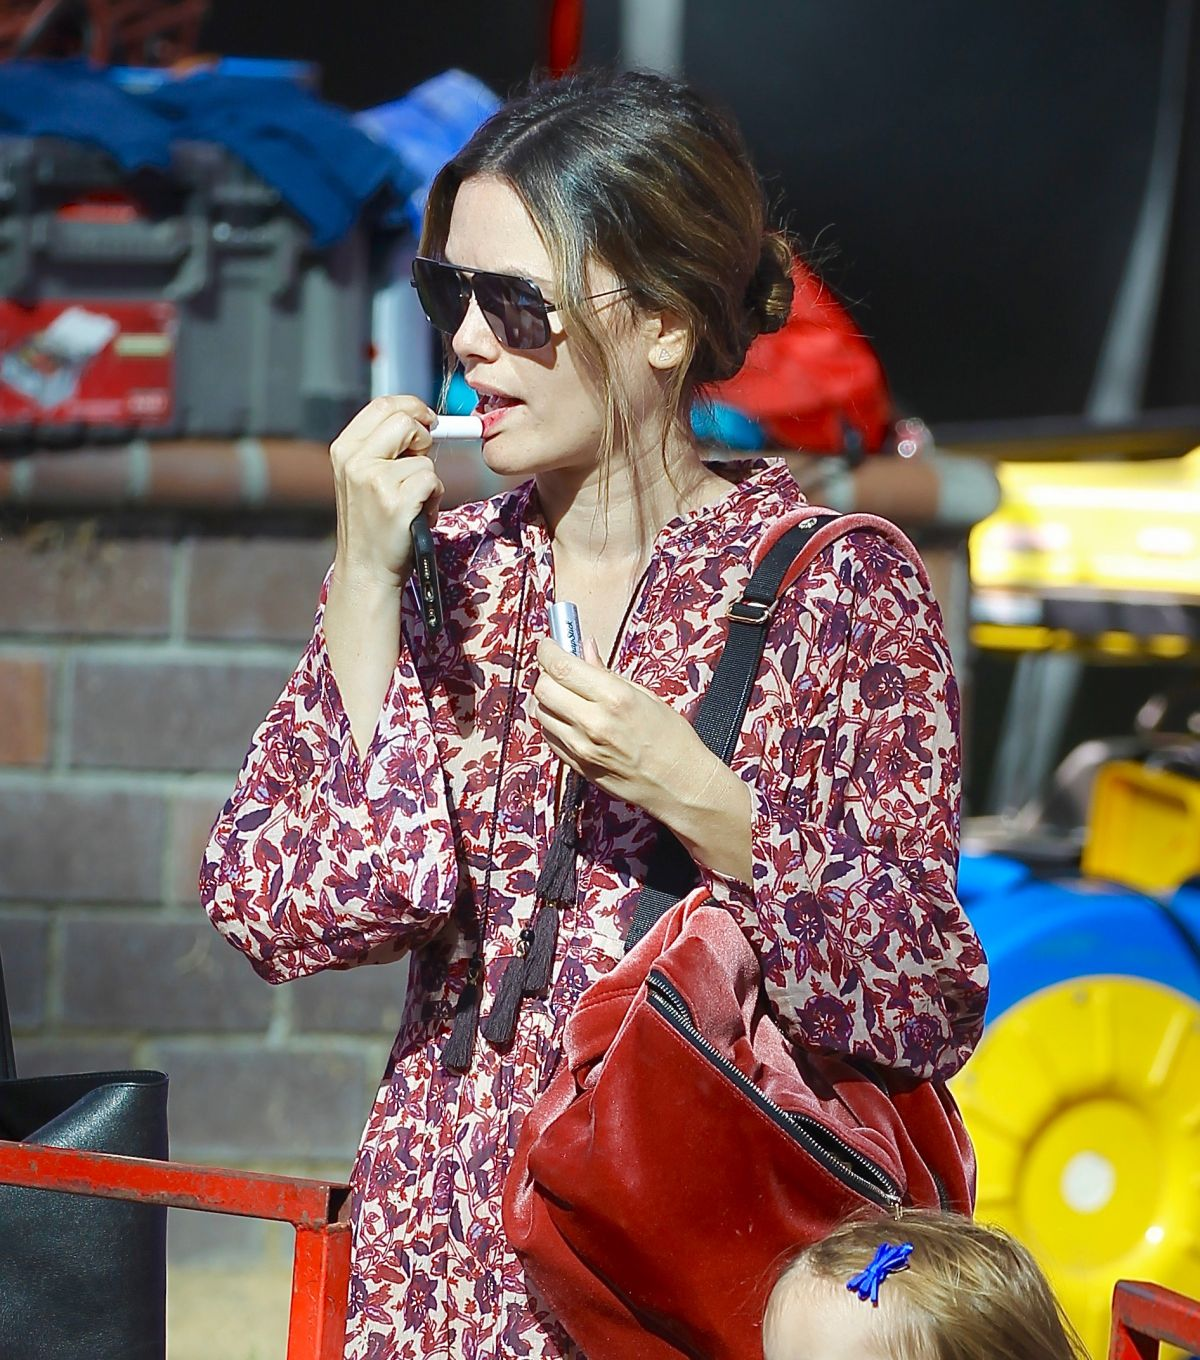 Rachel Bilson at Farmer's Market in Studio City